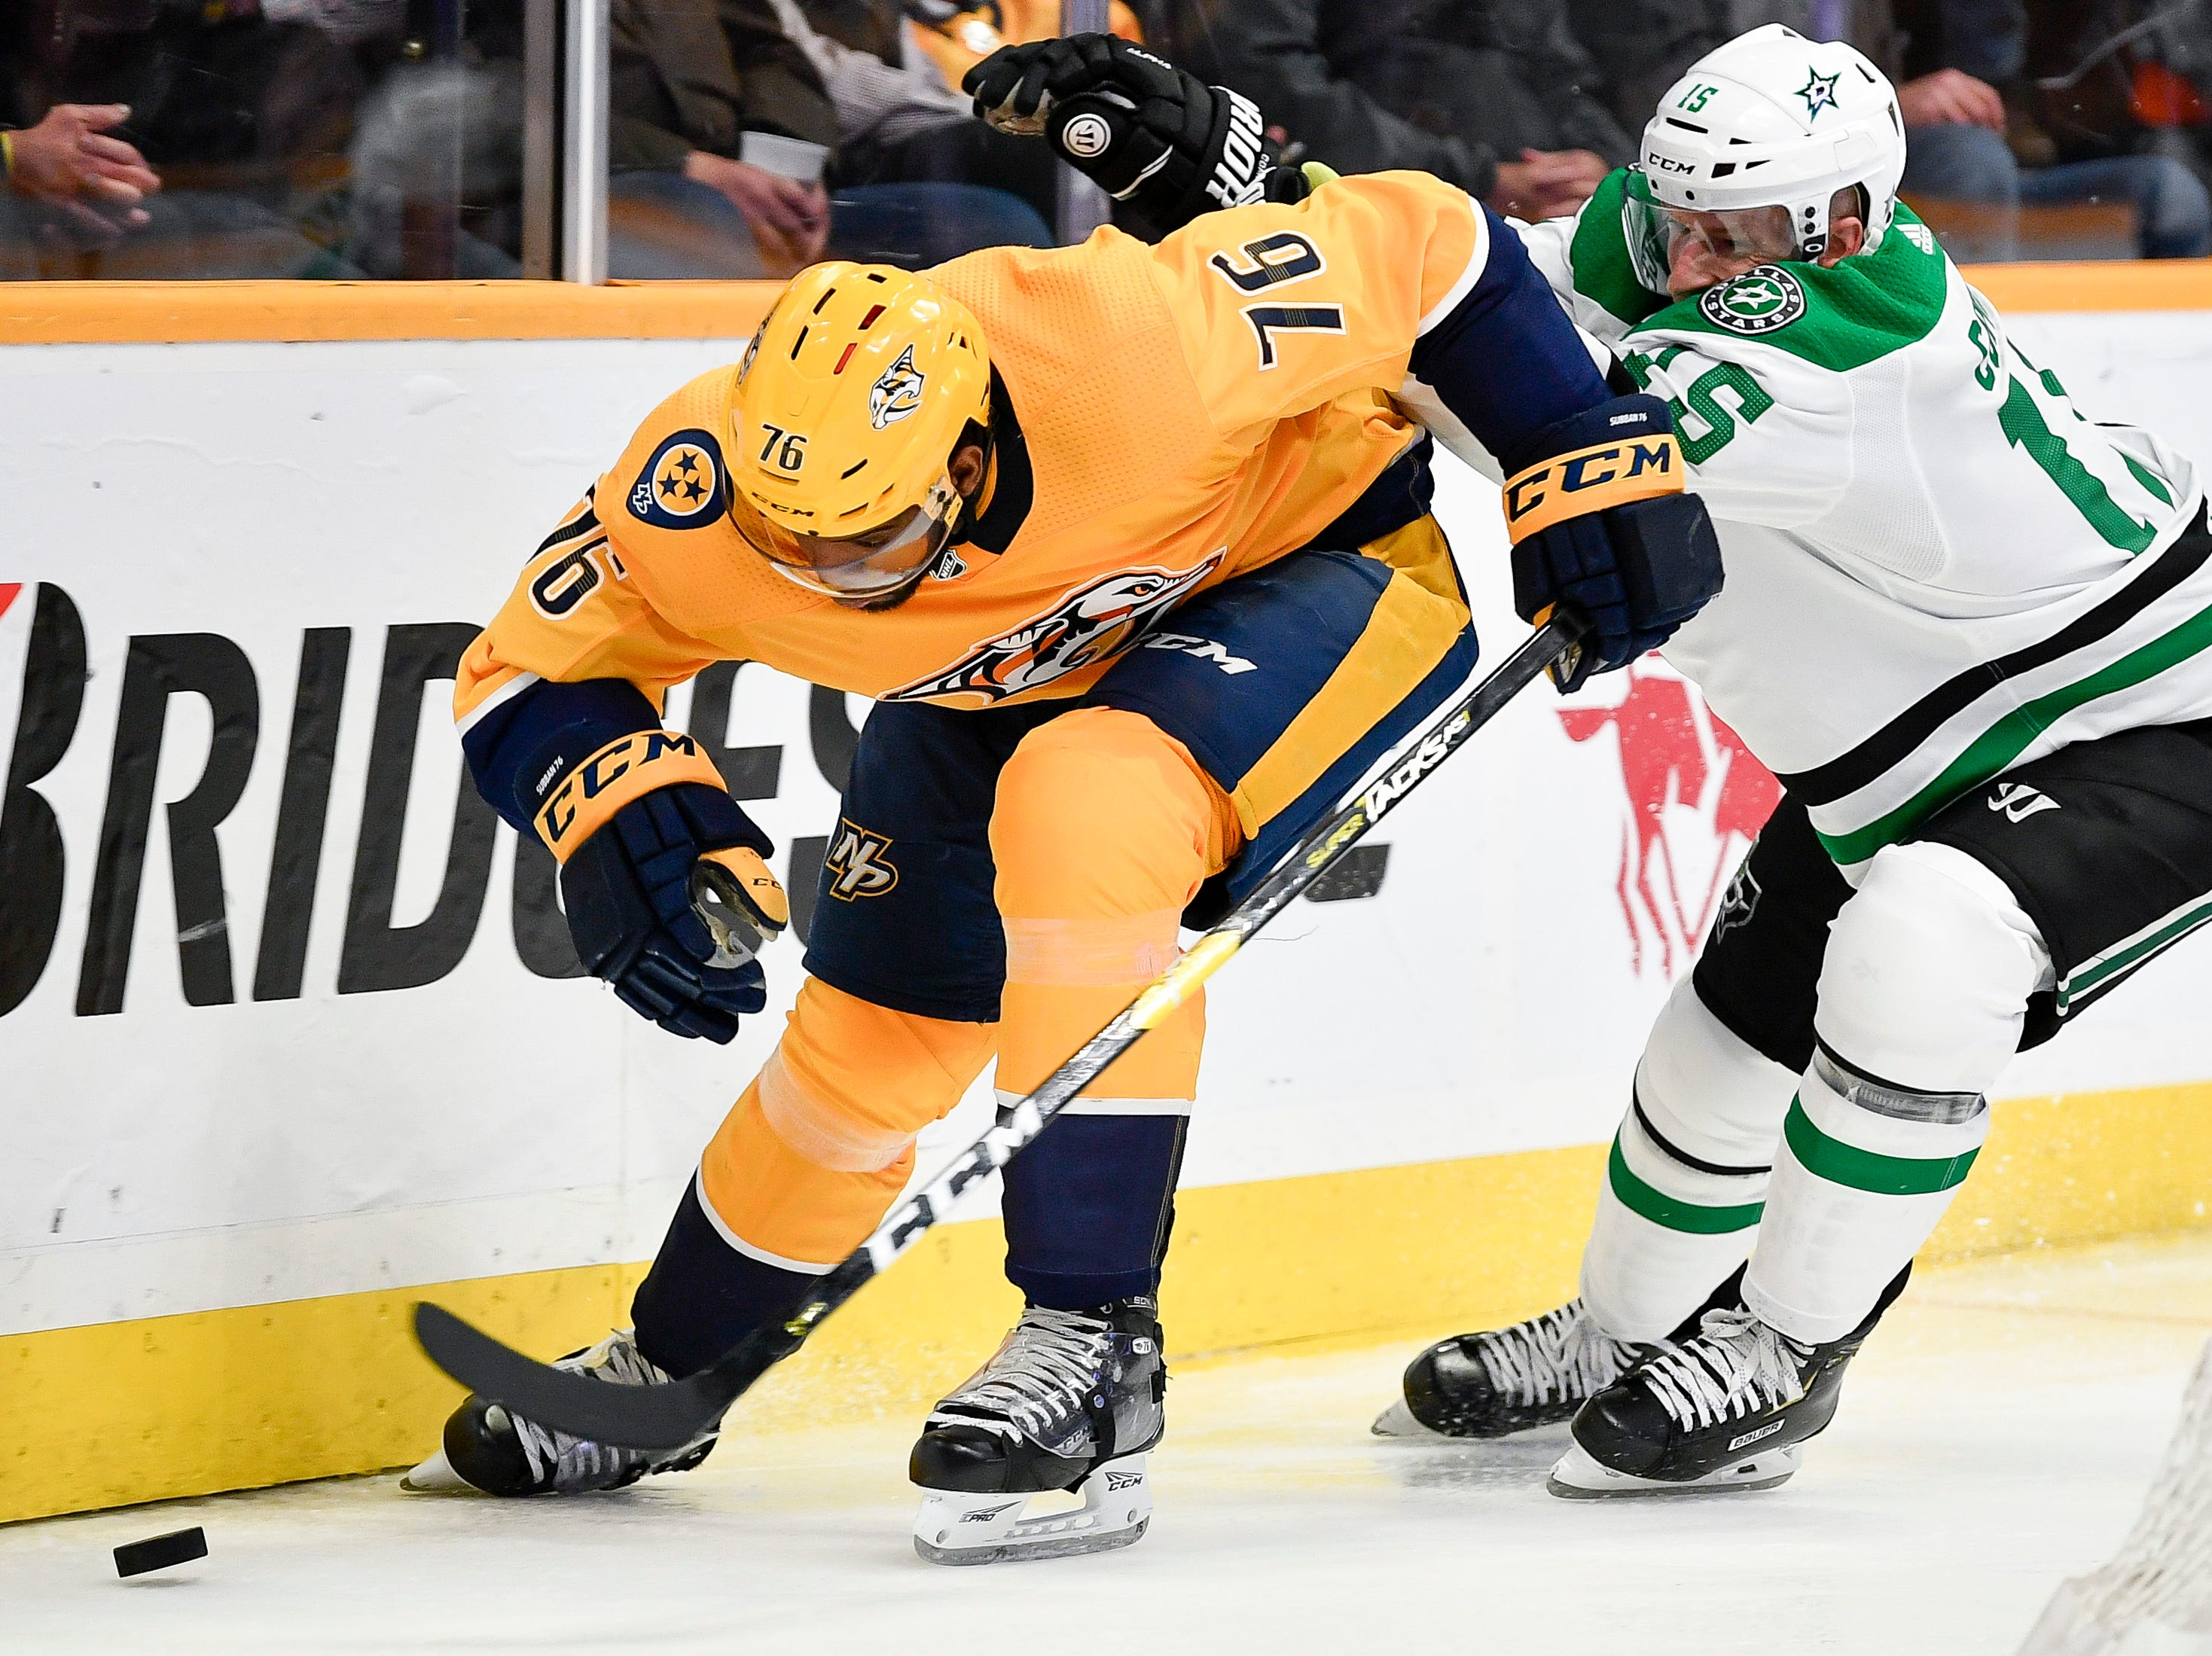 Nashville Predators defenseman P.K. Subban (76) chases the puck with Dallas Stars left wing Blake Comeau (15) during the second period at Bridgestone Arena in Nashville, Tenn., Thursday, Feb. 7, 2019.